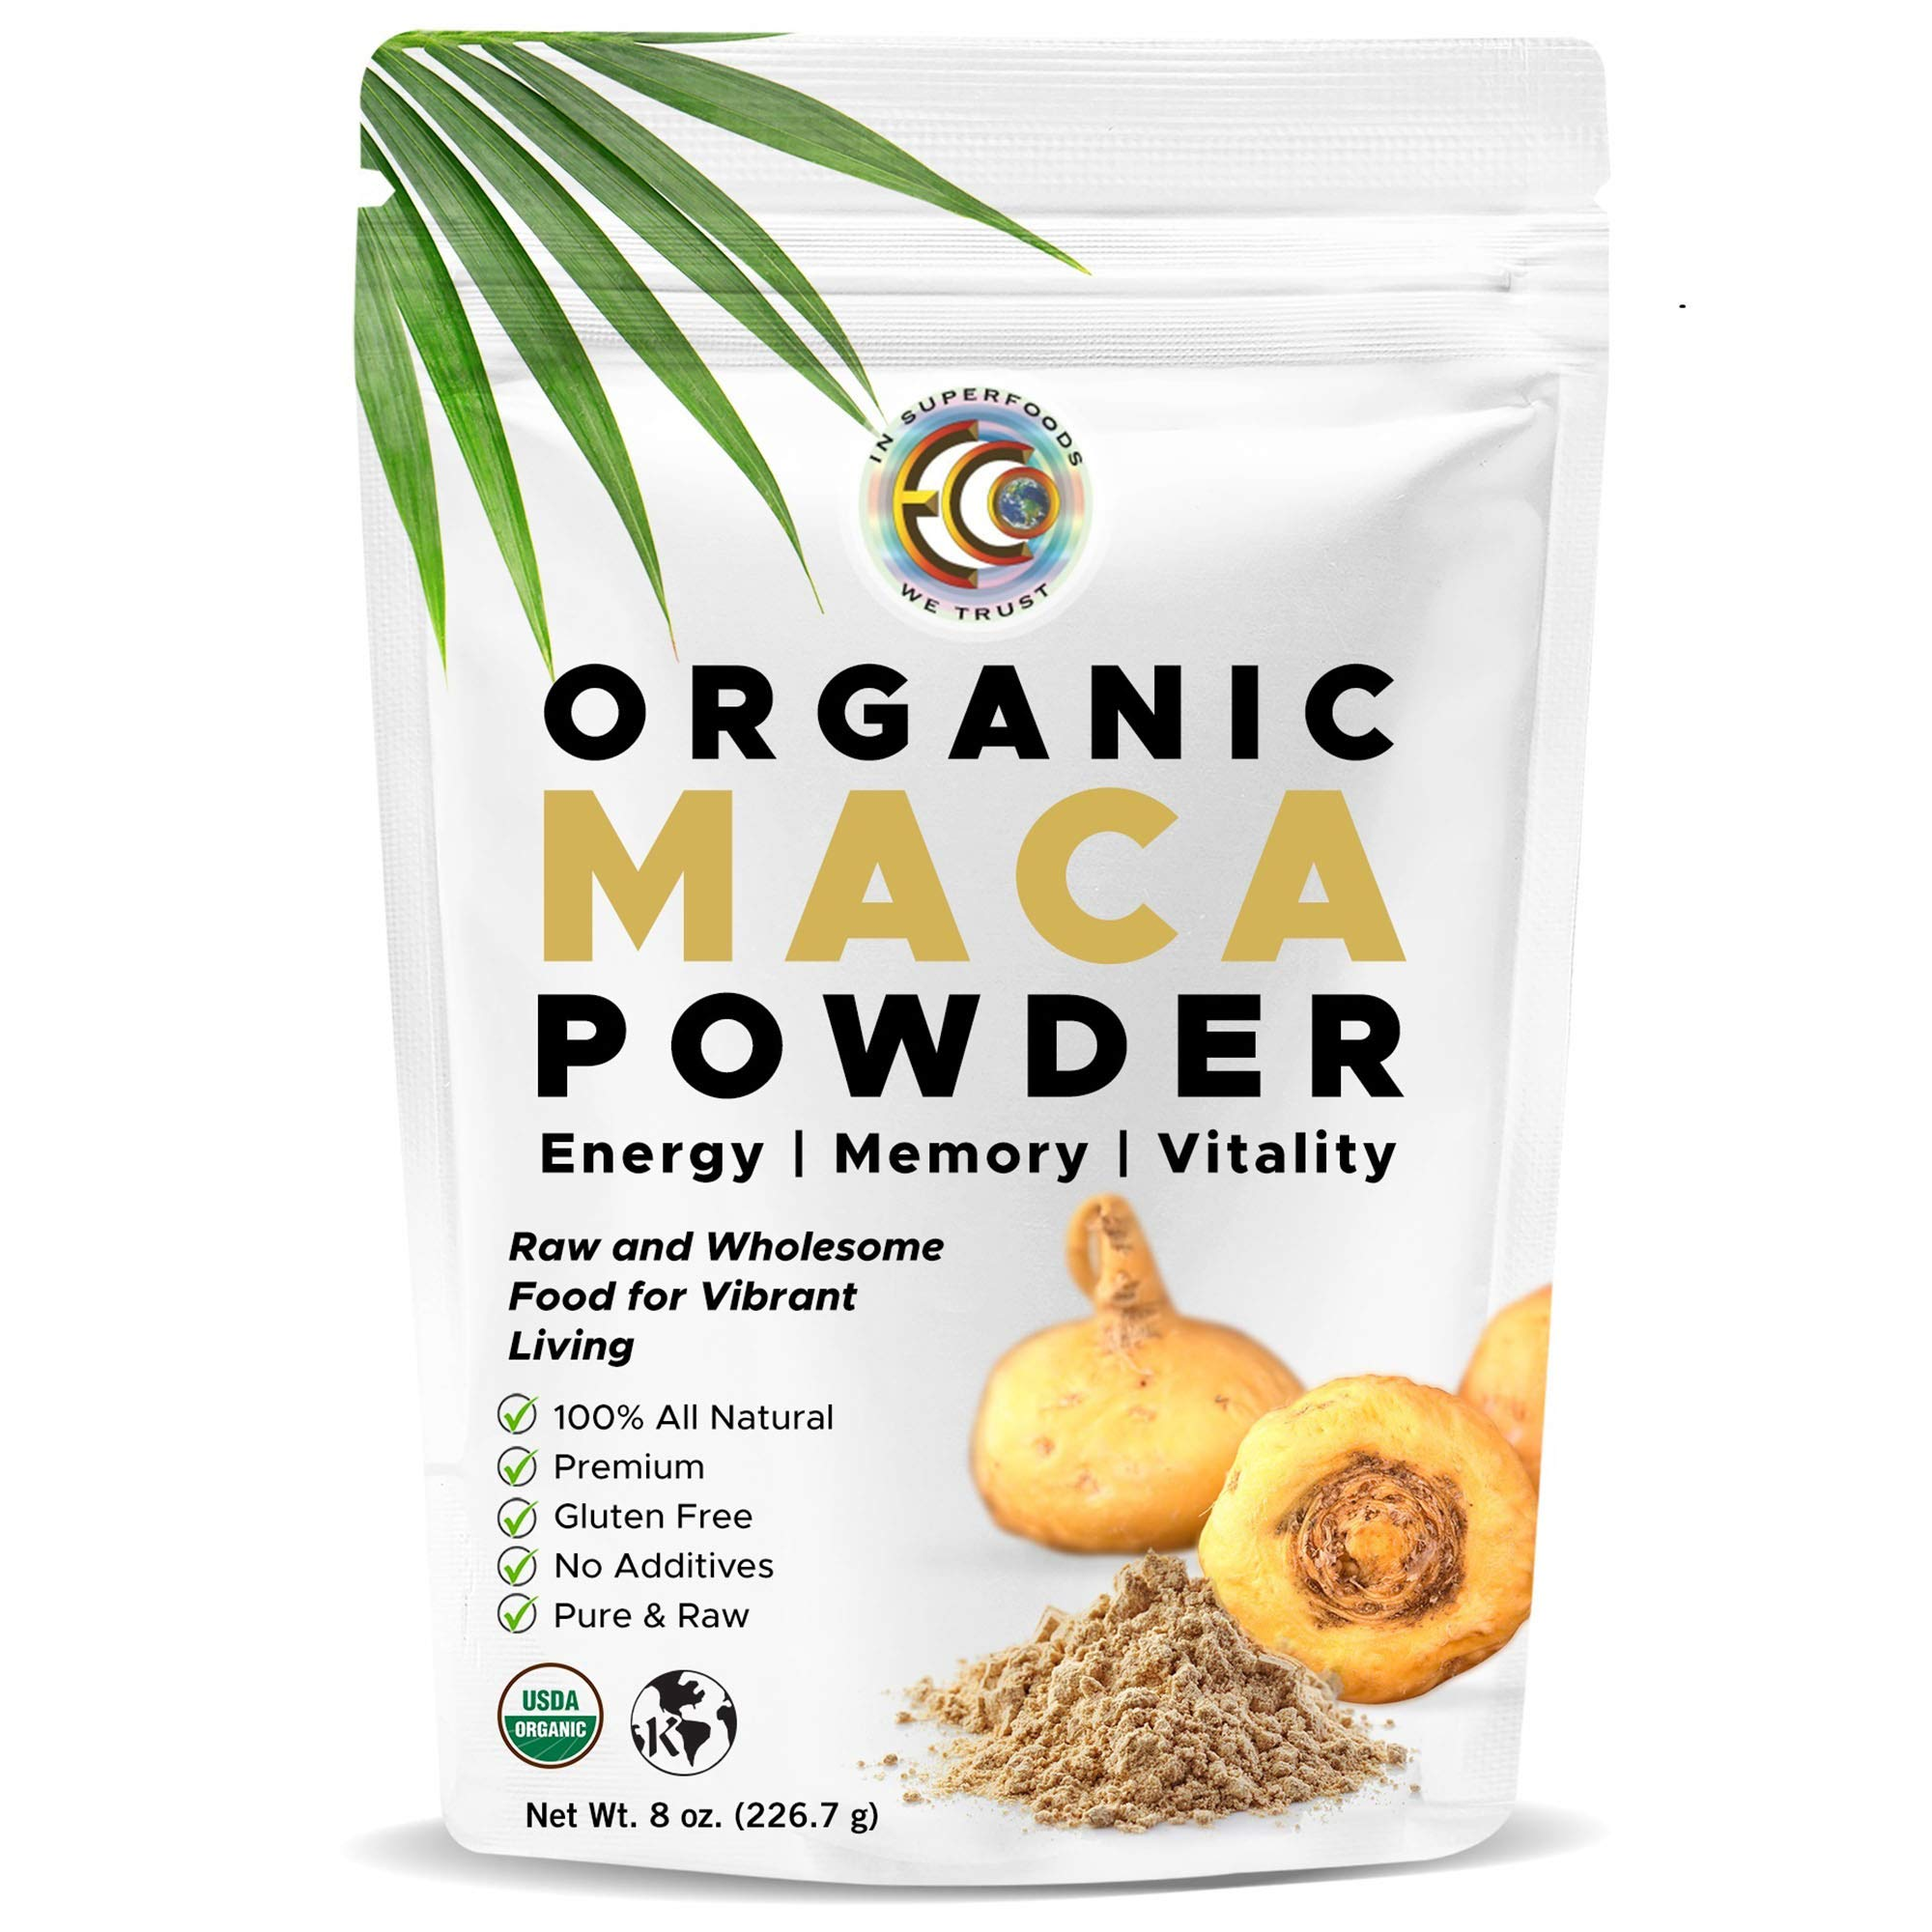 Earth Circle Organics - Organic Maca Root Powder, Natural Superfood, Helps with Energy, Hormone, Weight and Women's Fertility - USDA & Vegan Certified - 8oz(1 Pack)